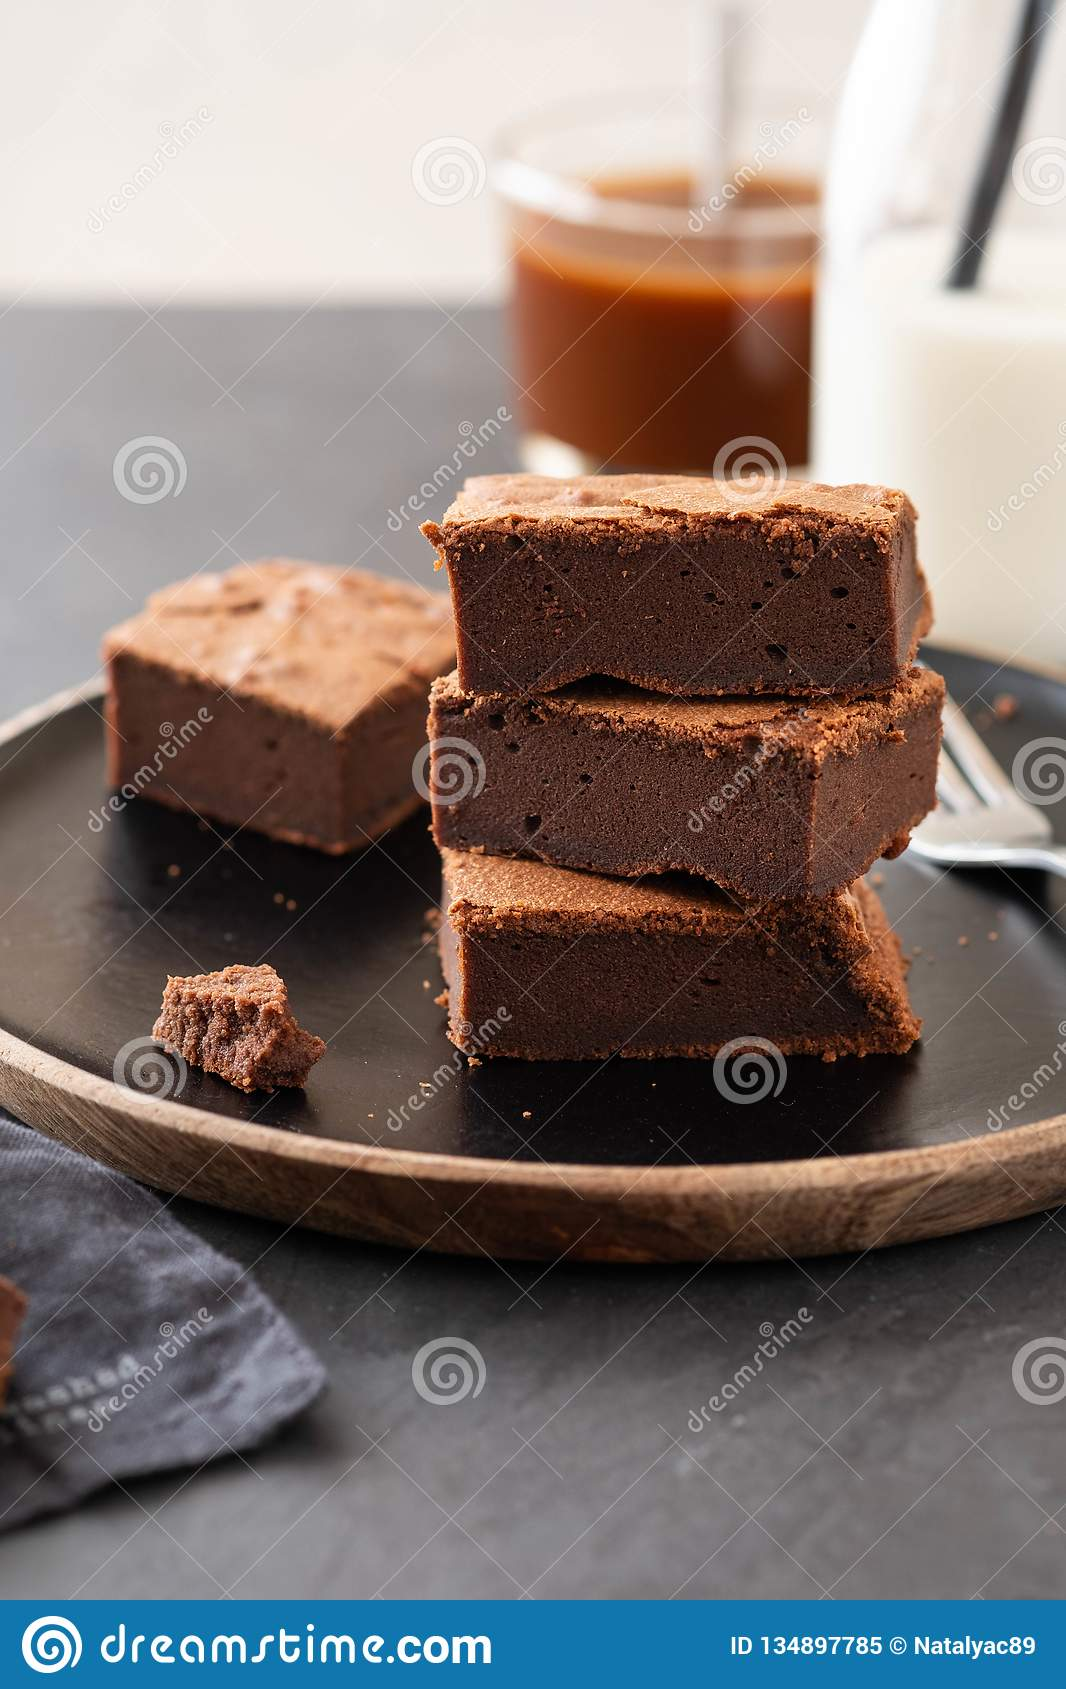 Double Chocolate Brownies. Homemade chocolate fudge brownies with chocolate chips and black background. Copy